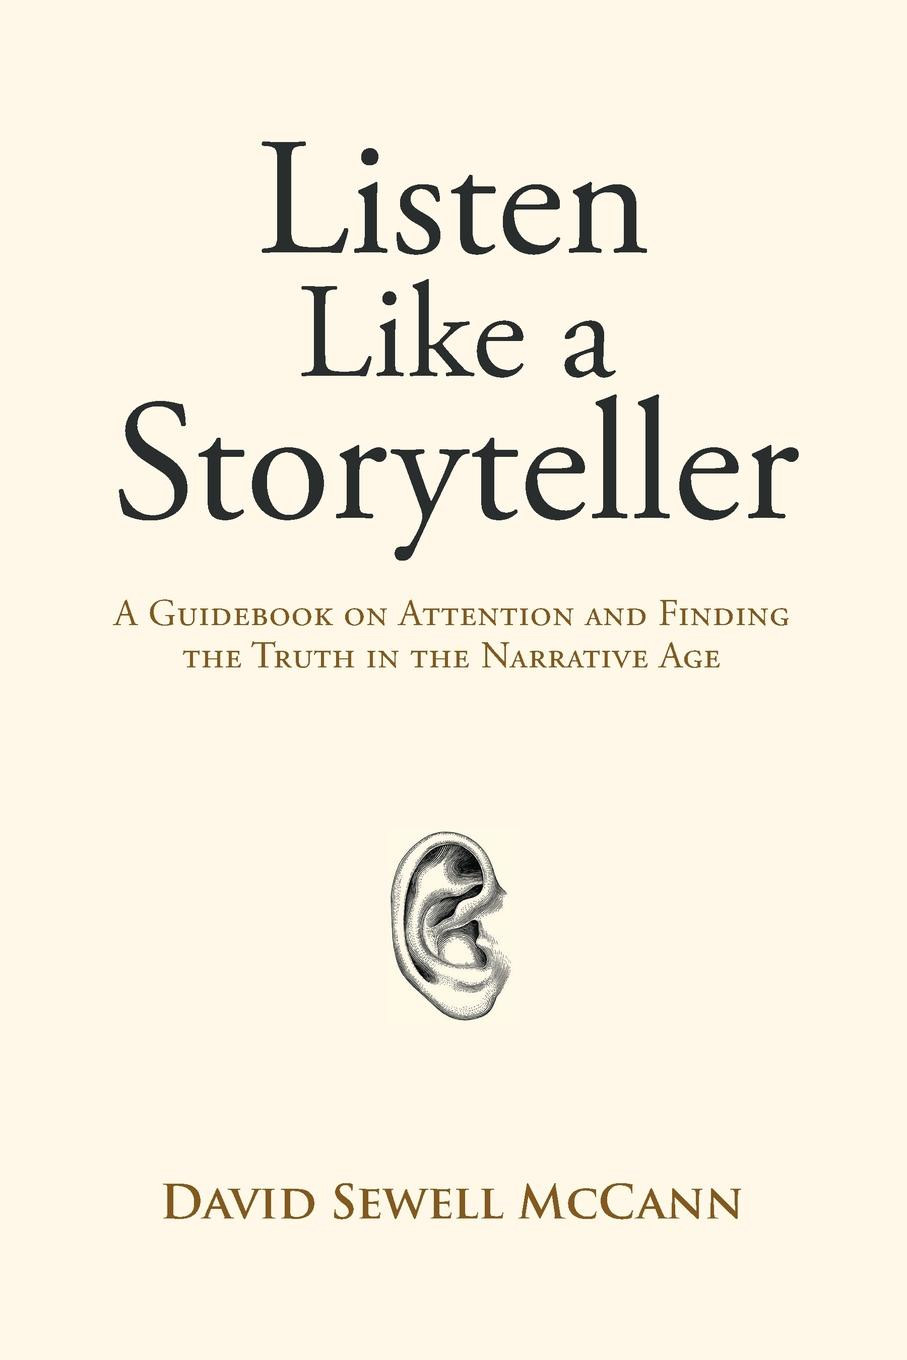 David Sewell McCann Listen Like a Storyteller. A Guidebook on Attention and Finding Truth in the Narrative Age